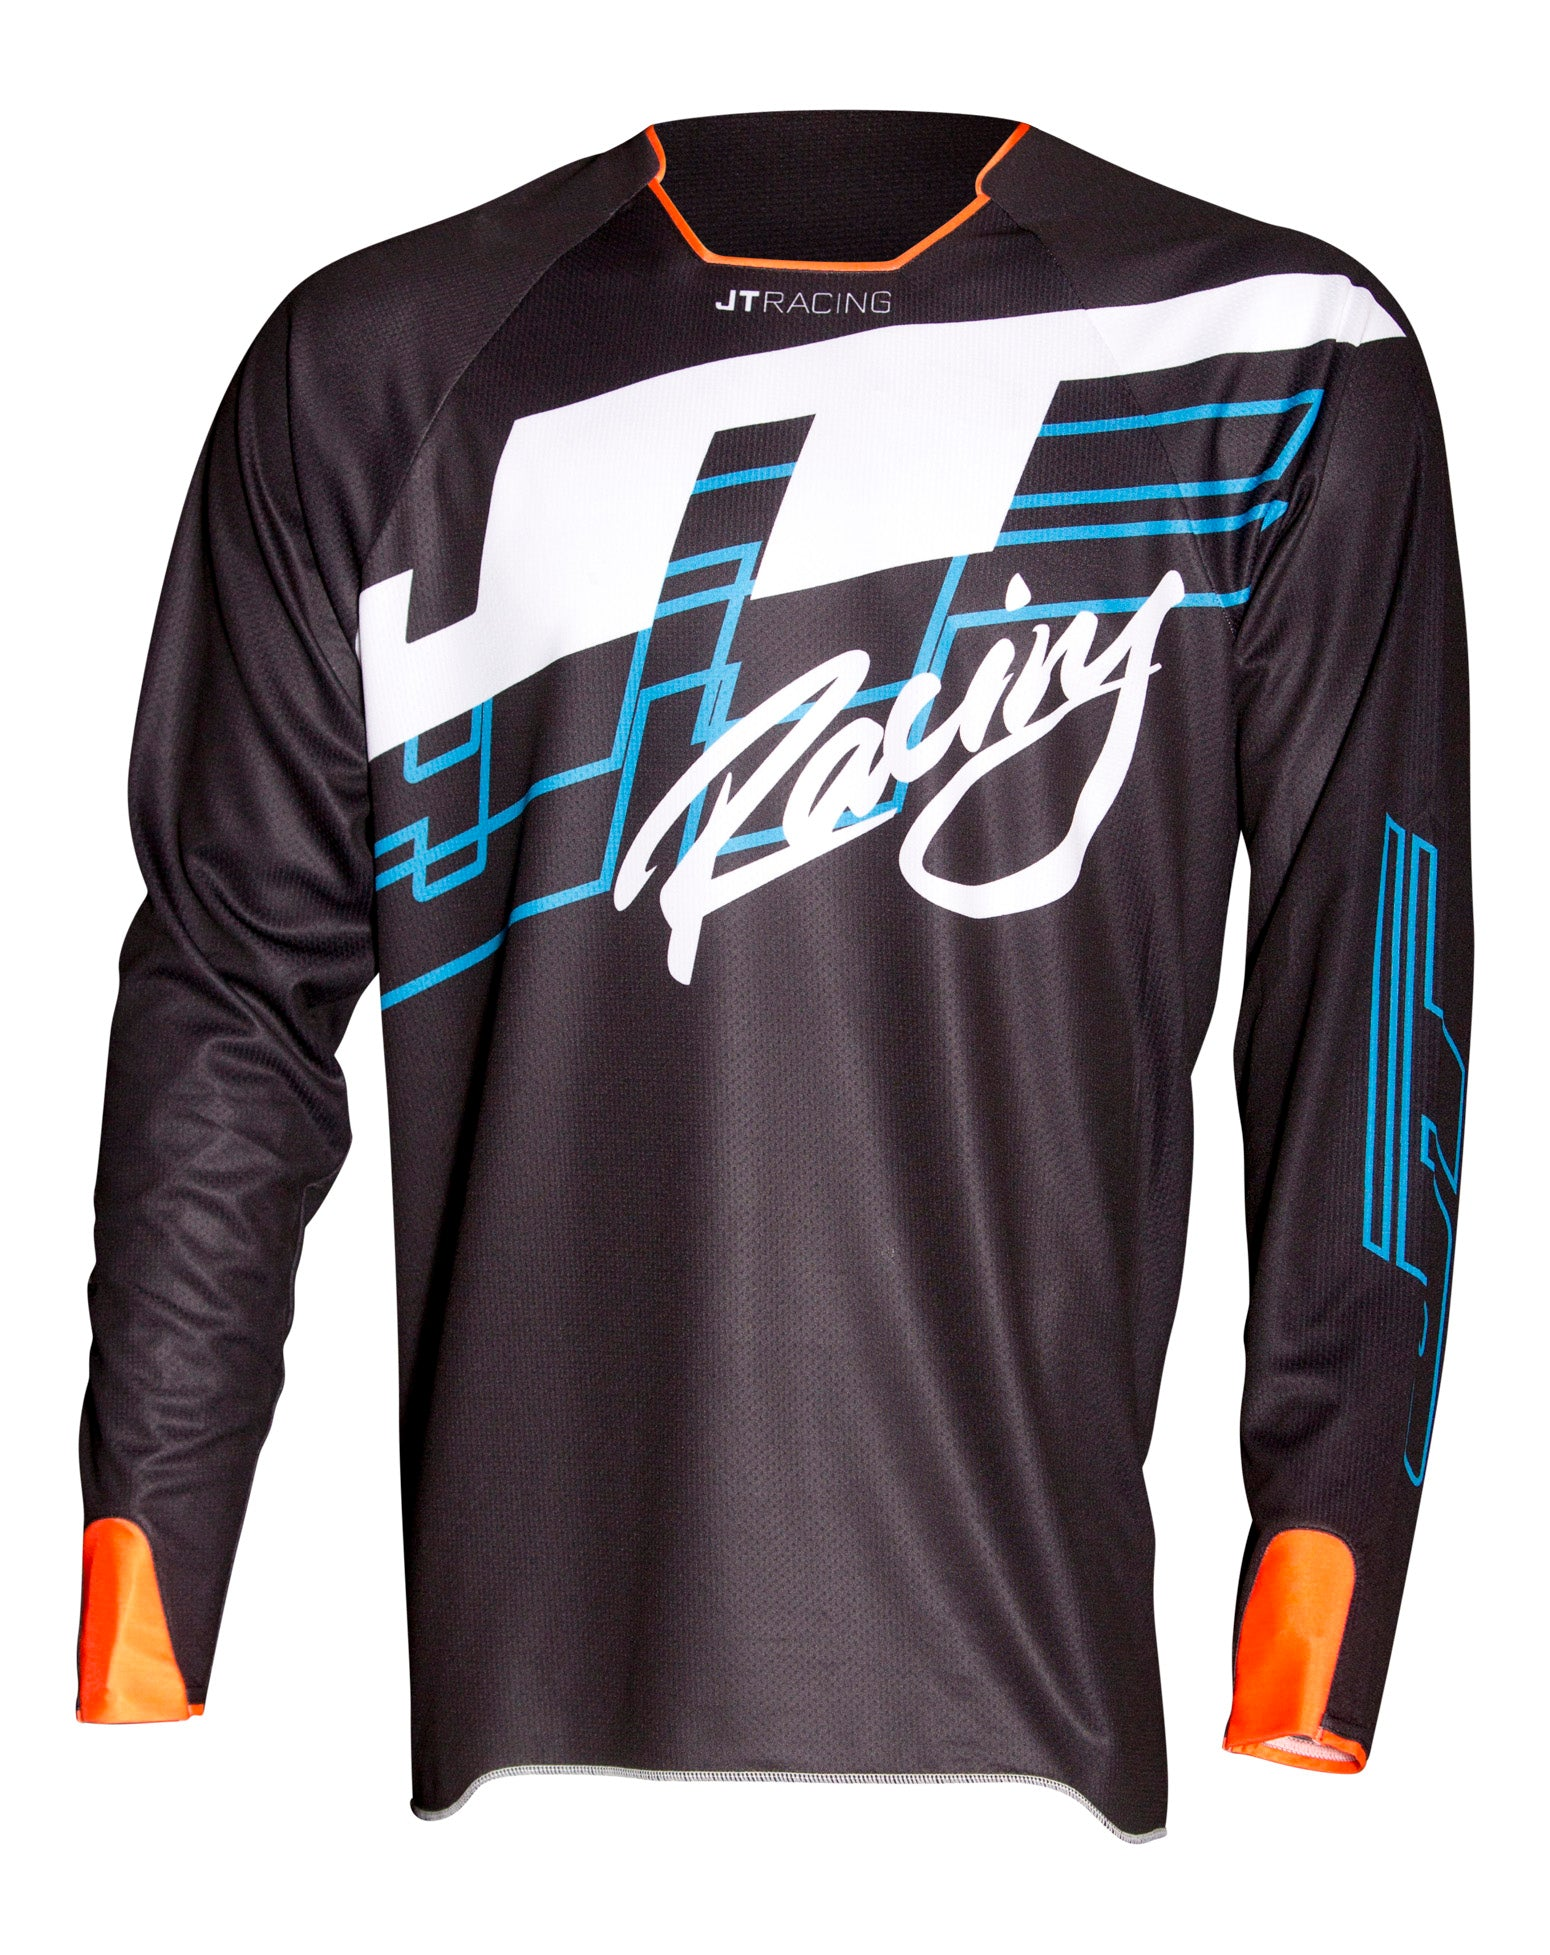 JT Racing USA-Hyperlite Shuffle, Jersey, Black/Cyan/Fluro Orange